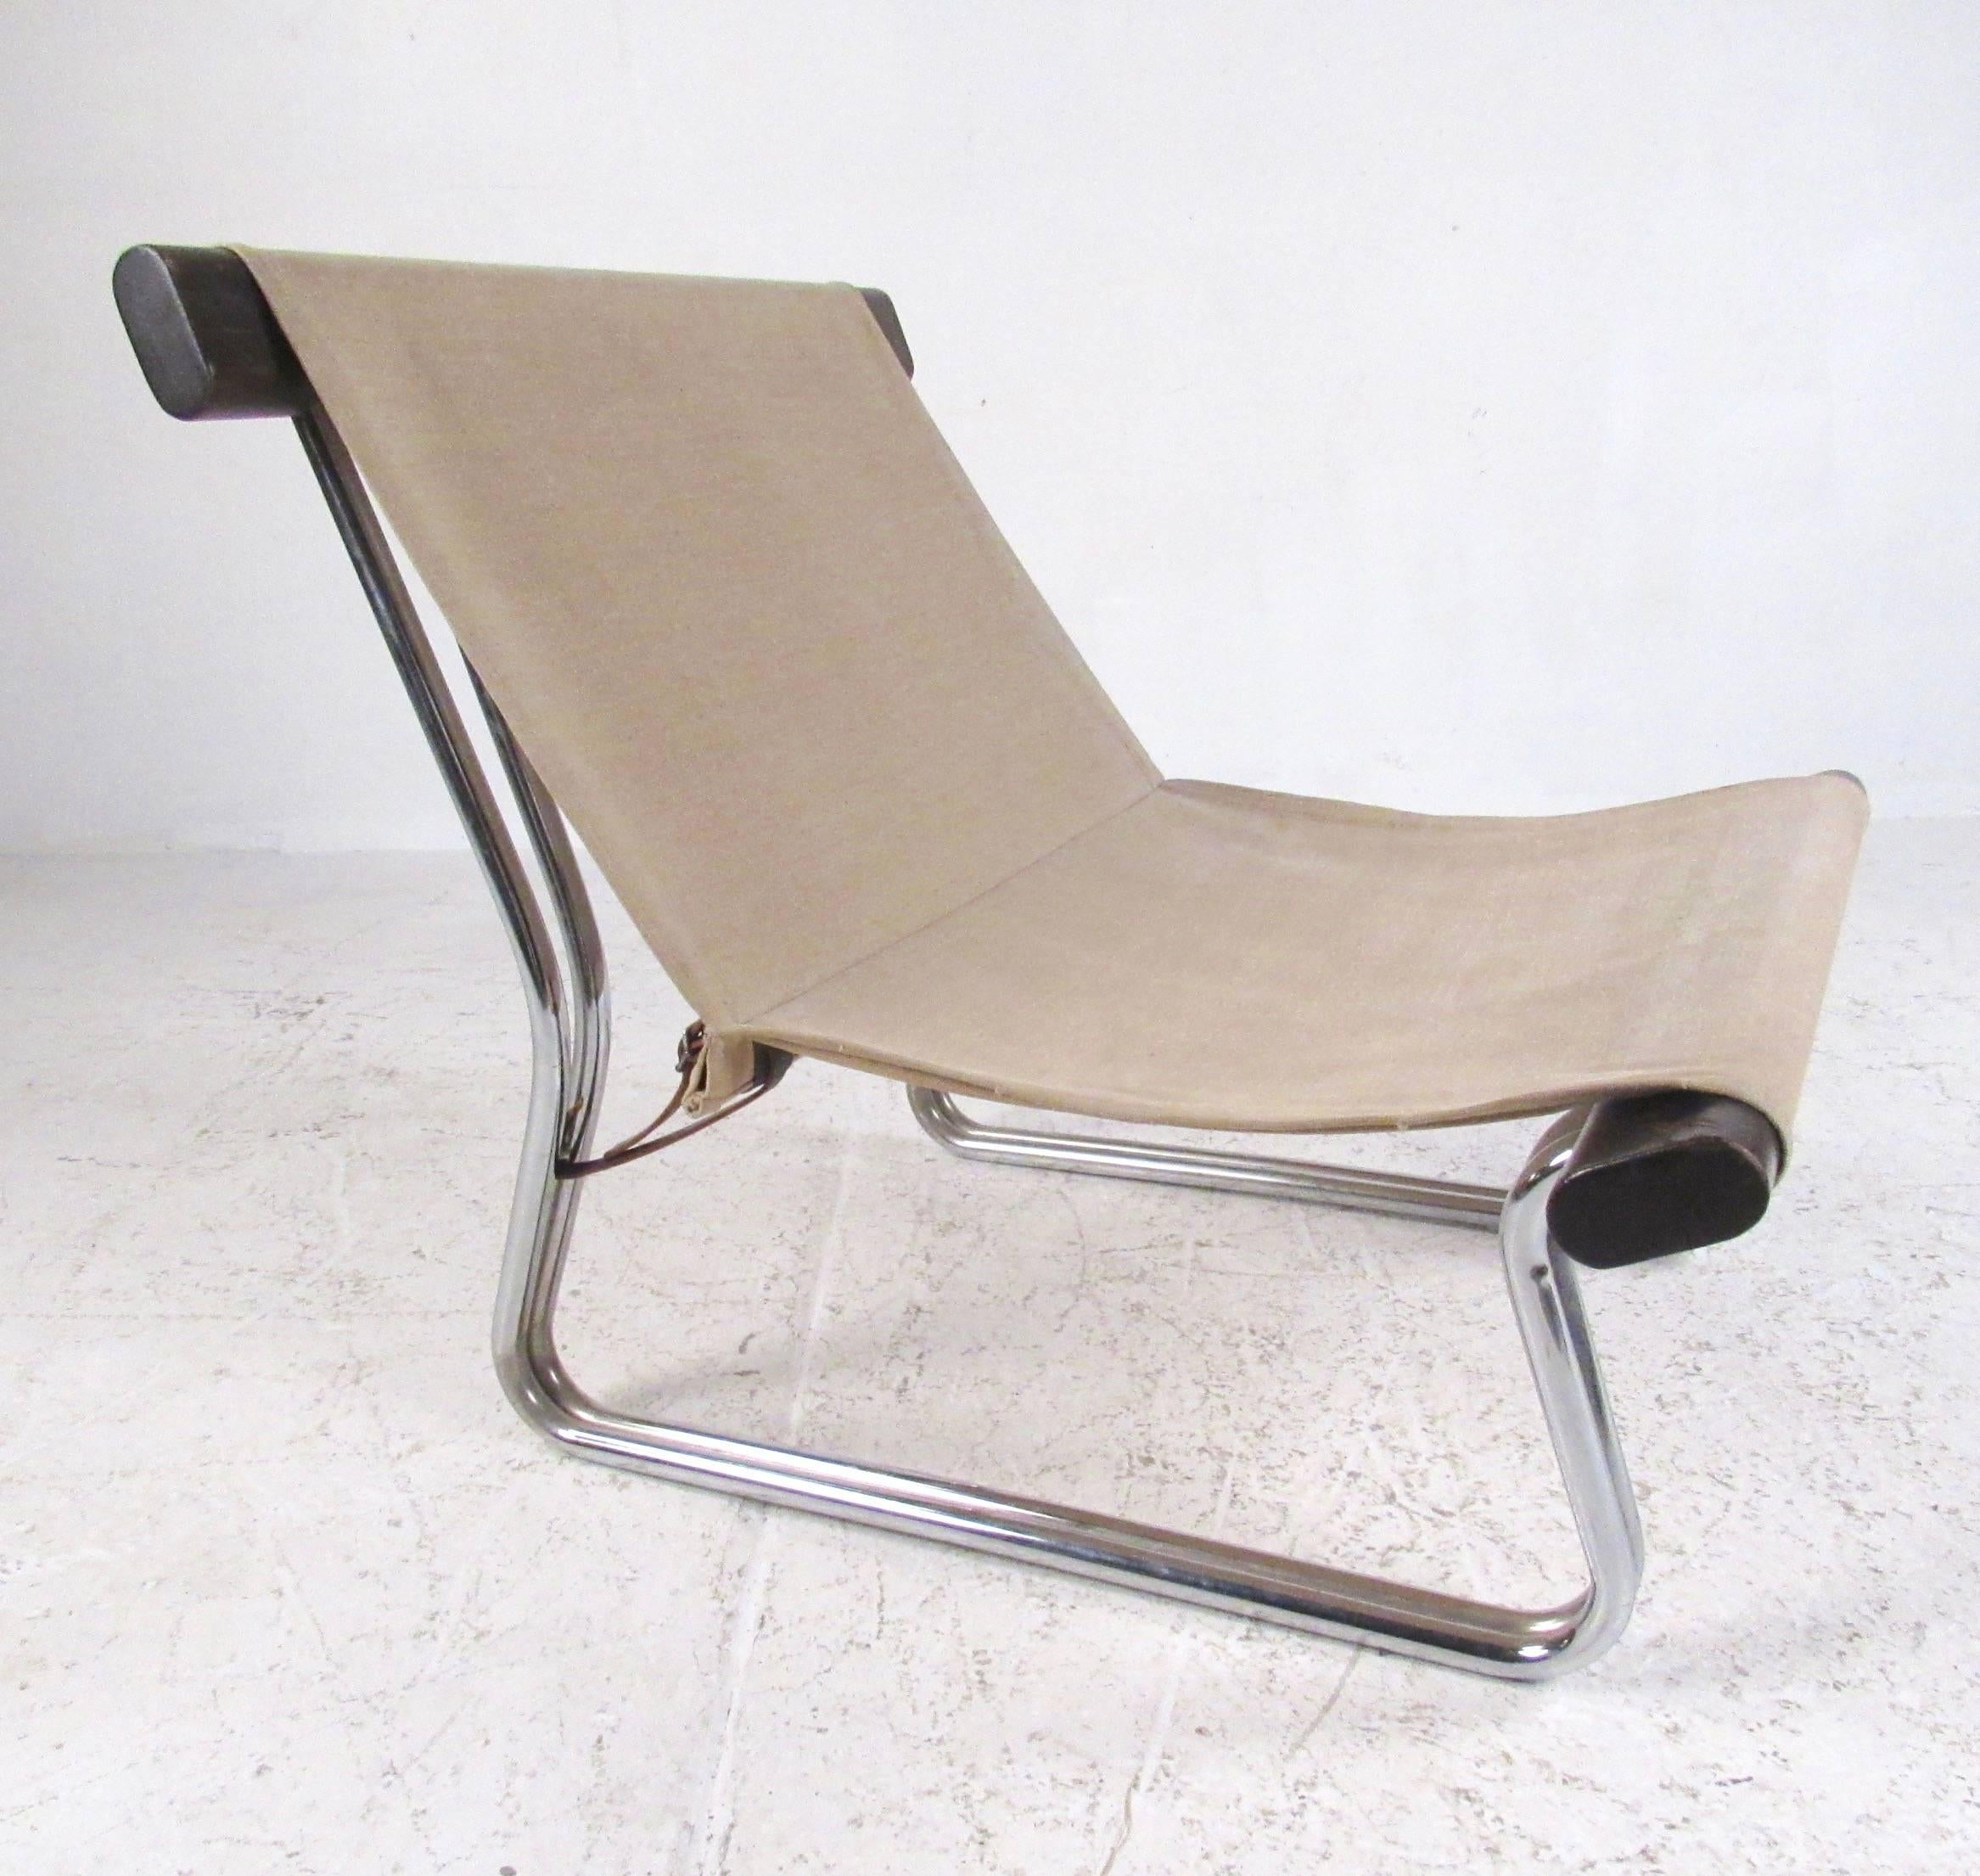 This Vintage Modern Sling Chair Features Tubular Chrome And Wood Frame With  A Canvas Seat.